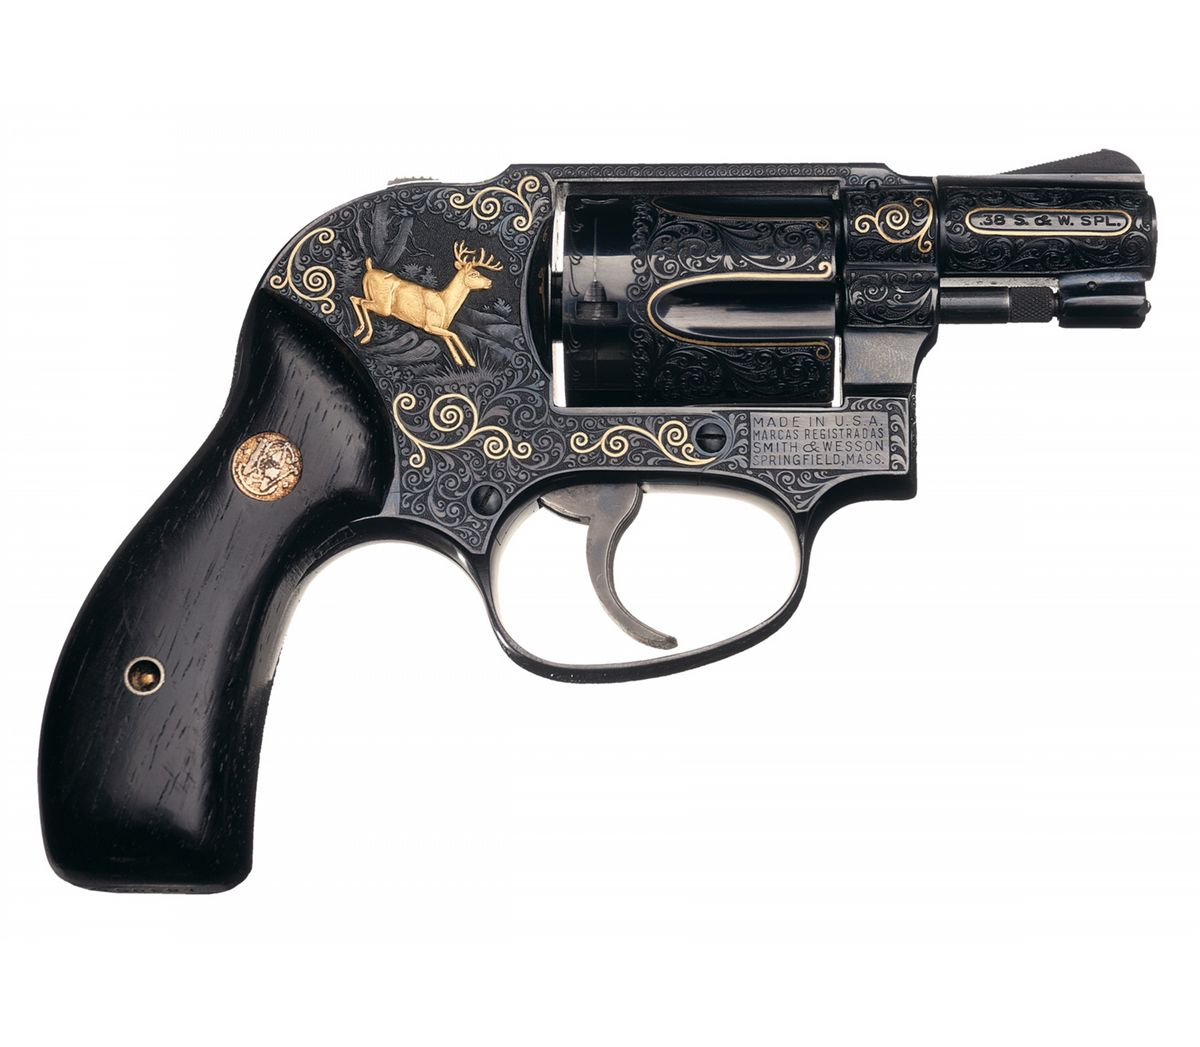 Exhibition Quality Factory Engraved Gold Inlaid Smith & Wesson Model 49  Bodyguard Double Action Revo